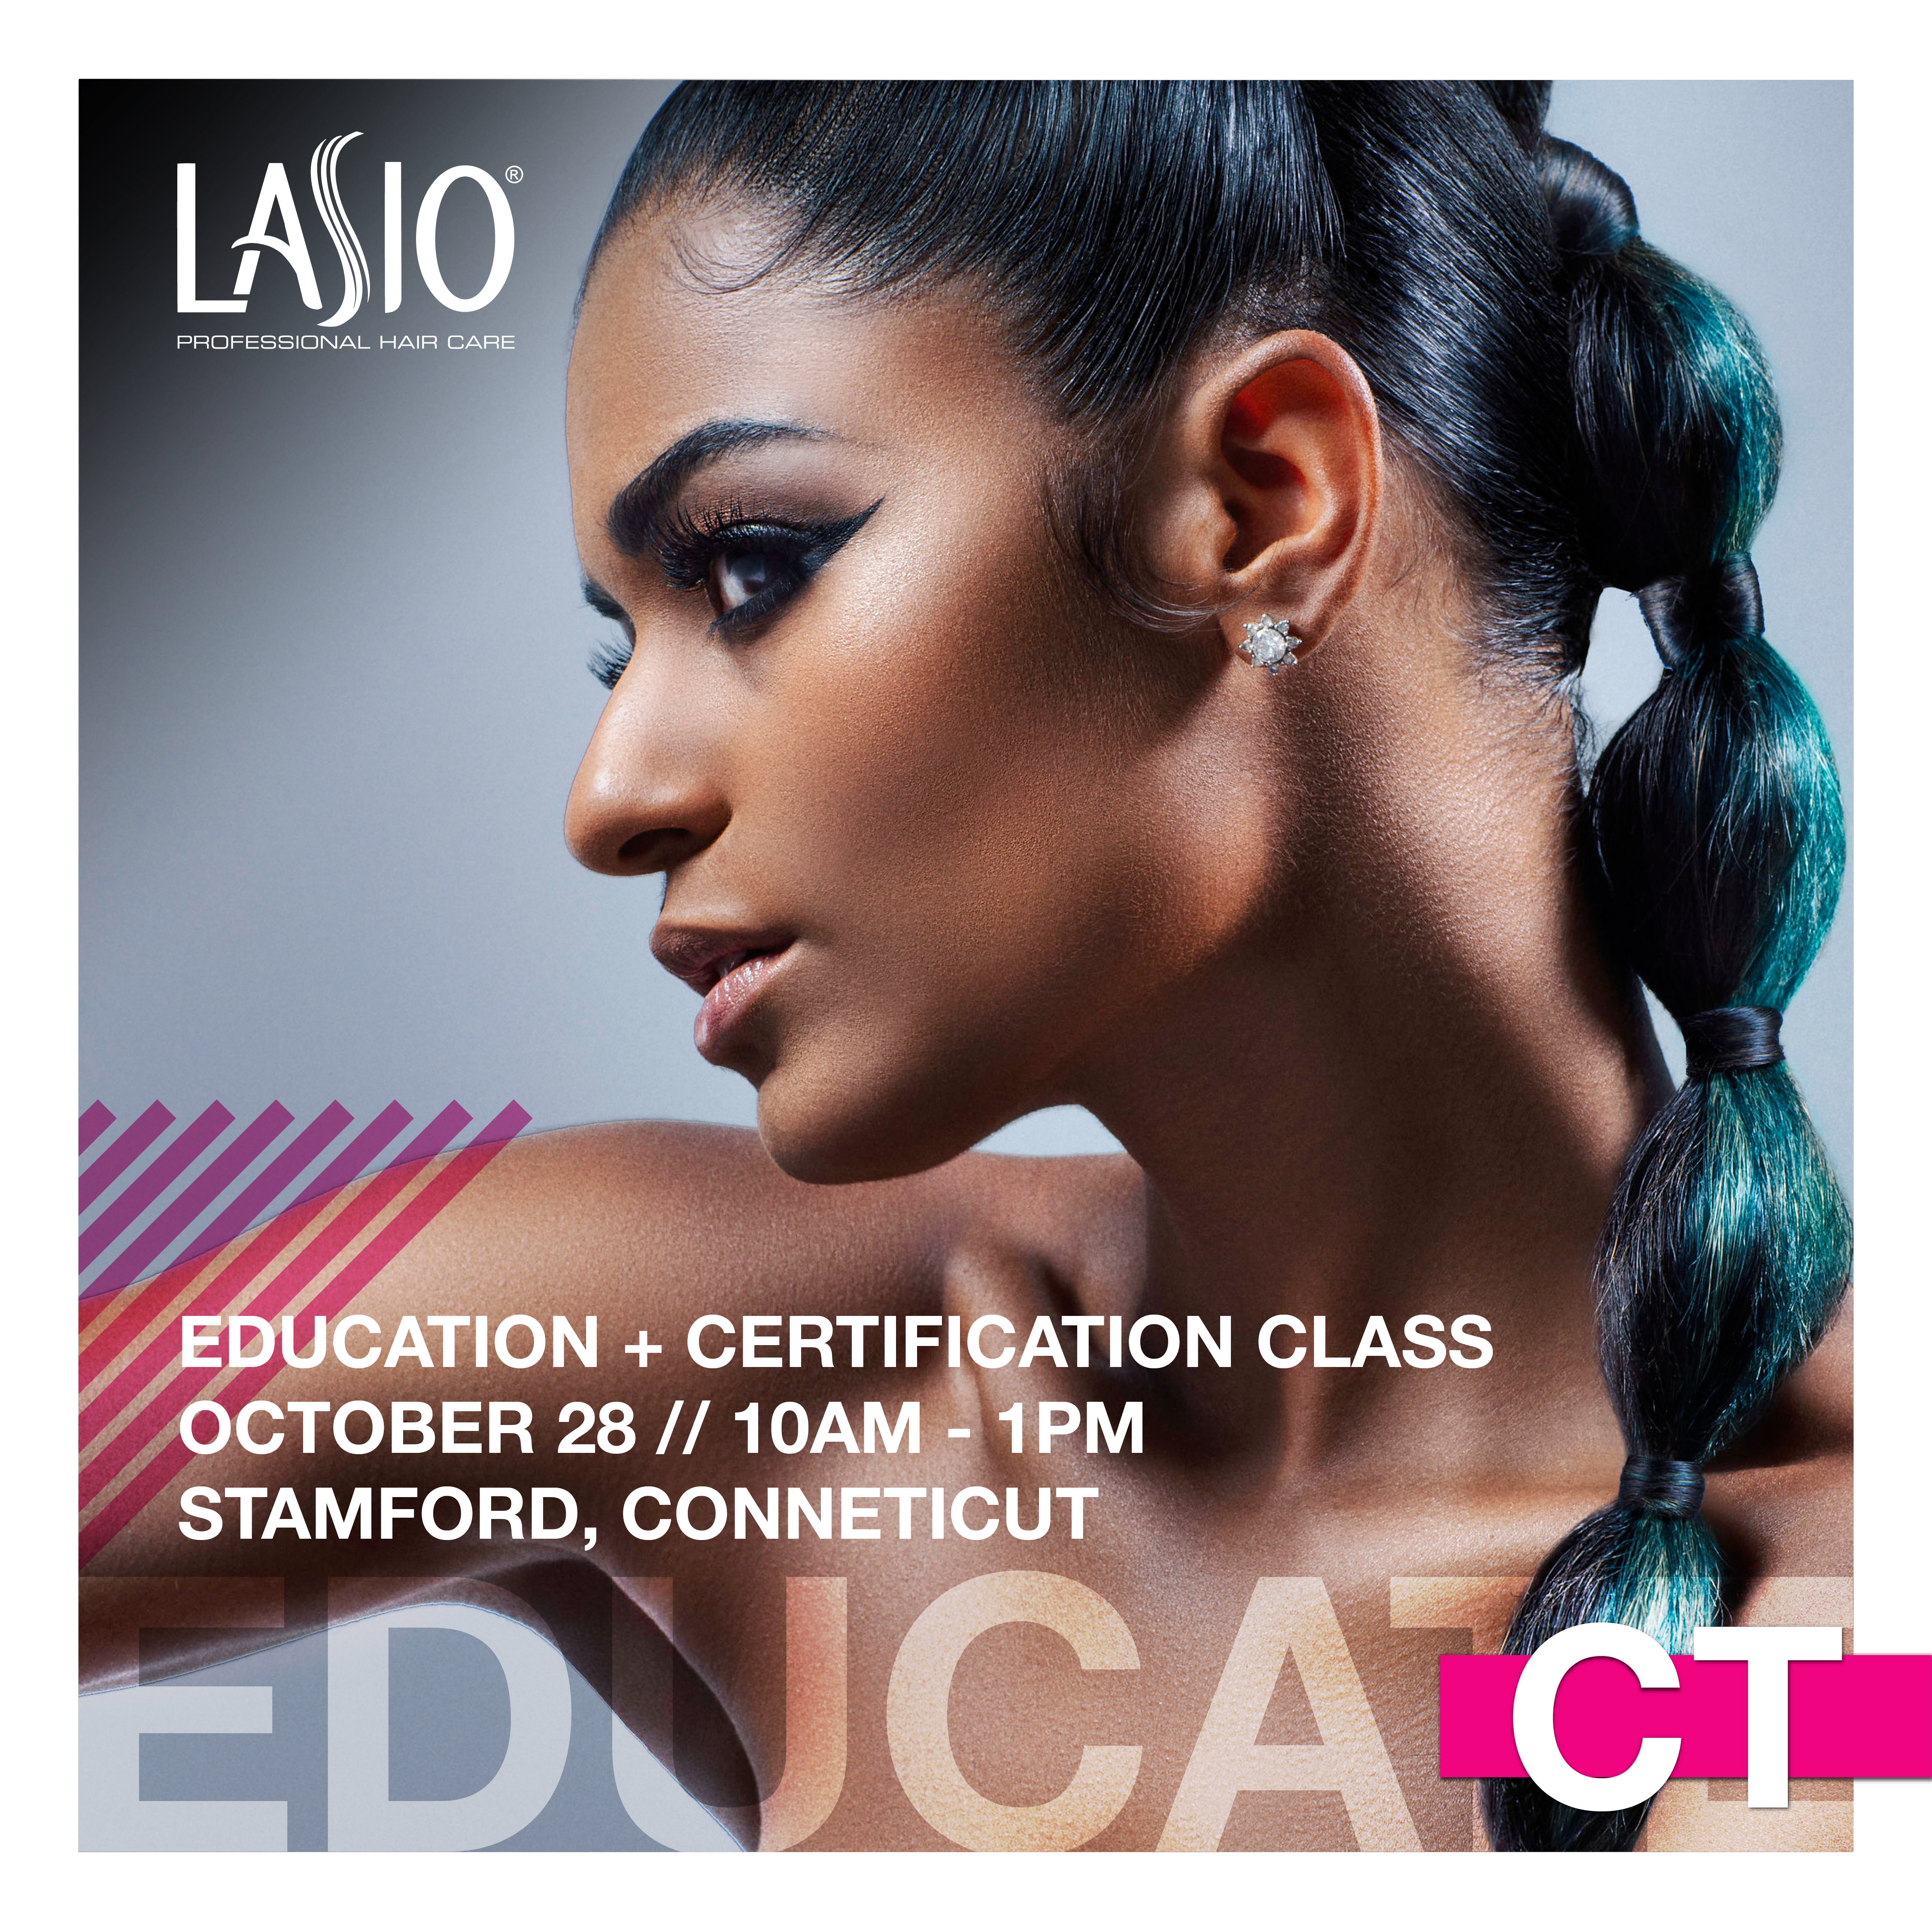 LASIO Certification + Education Class - October 28, 2019 - Stamford, CT